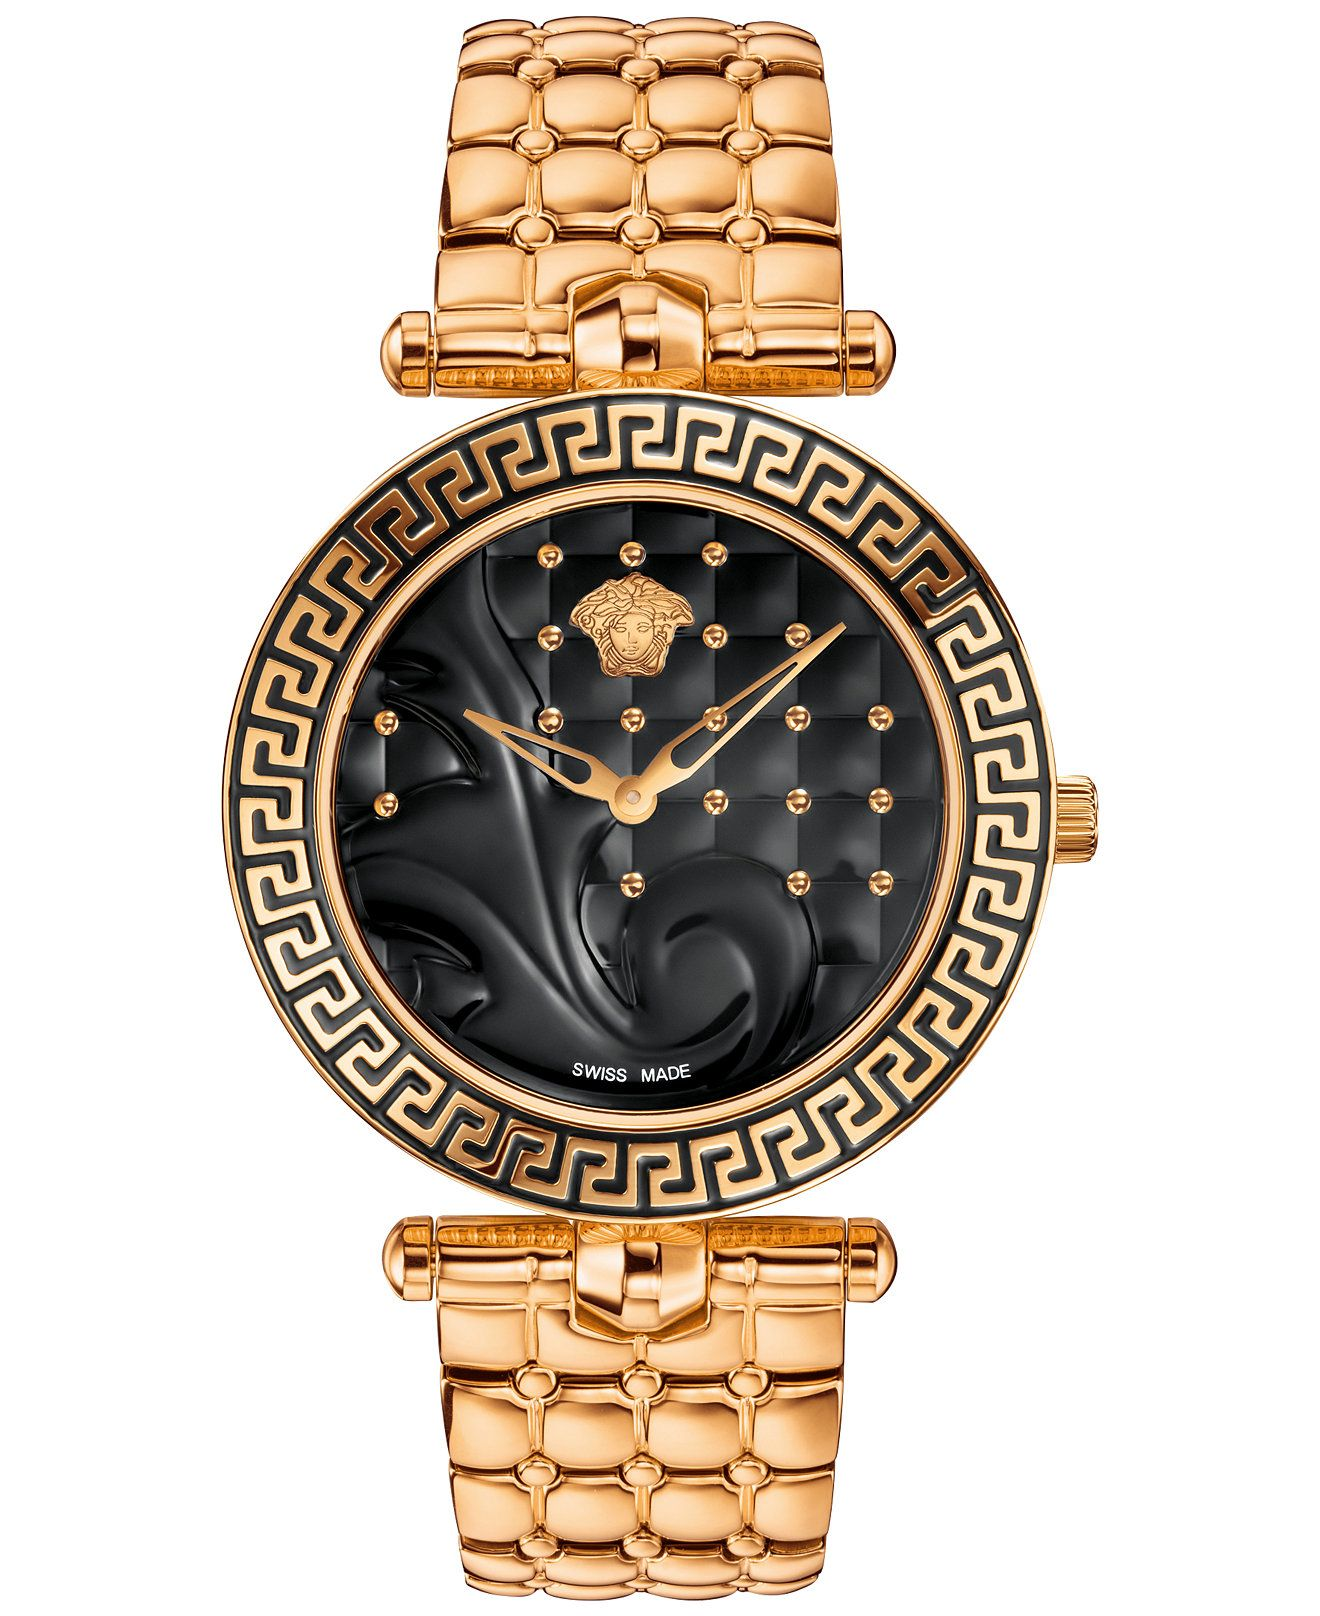 versace watch men s pre owned gianni signature gold medusa versace men s swiss rose gold tone ion plated stainless steel bracelet watch 40mm vk723 0015